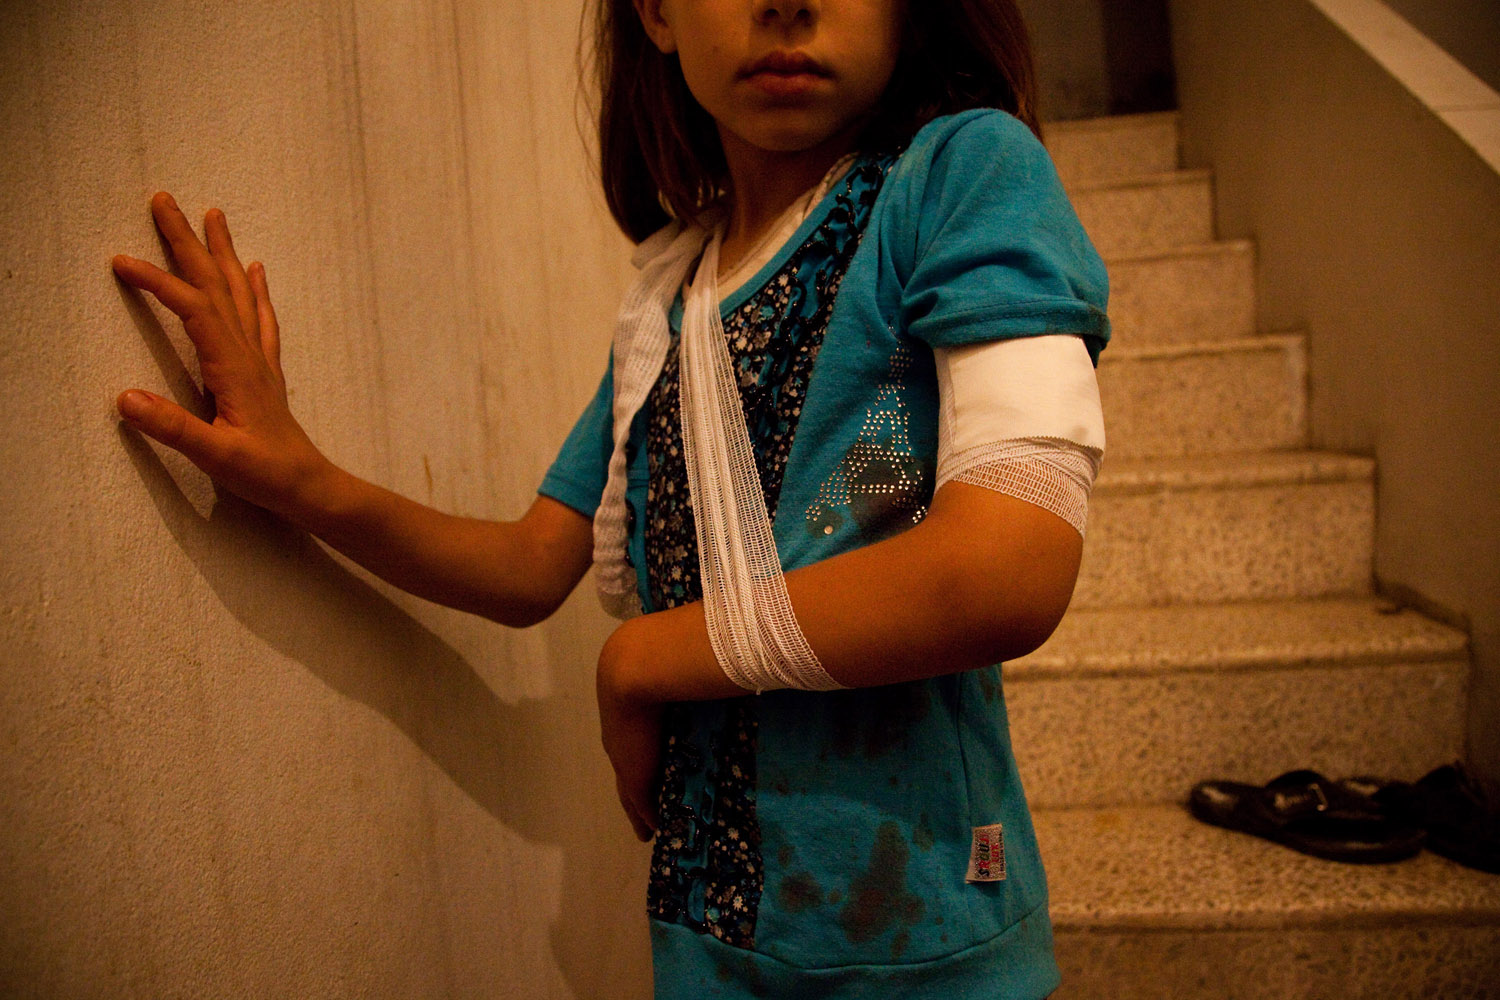 Maais, 10, was sitting on the stairs of her house when a mortar fired by the Syrian Army landed nearby, spraying shrapnel into the home and injuring her on the night of June 9, 2012 in the city of Maarat Al Noman.